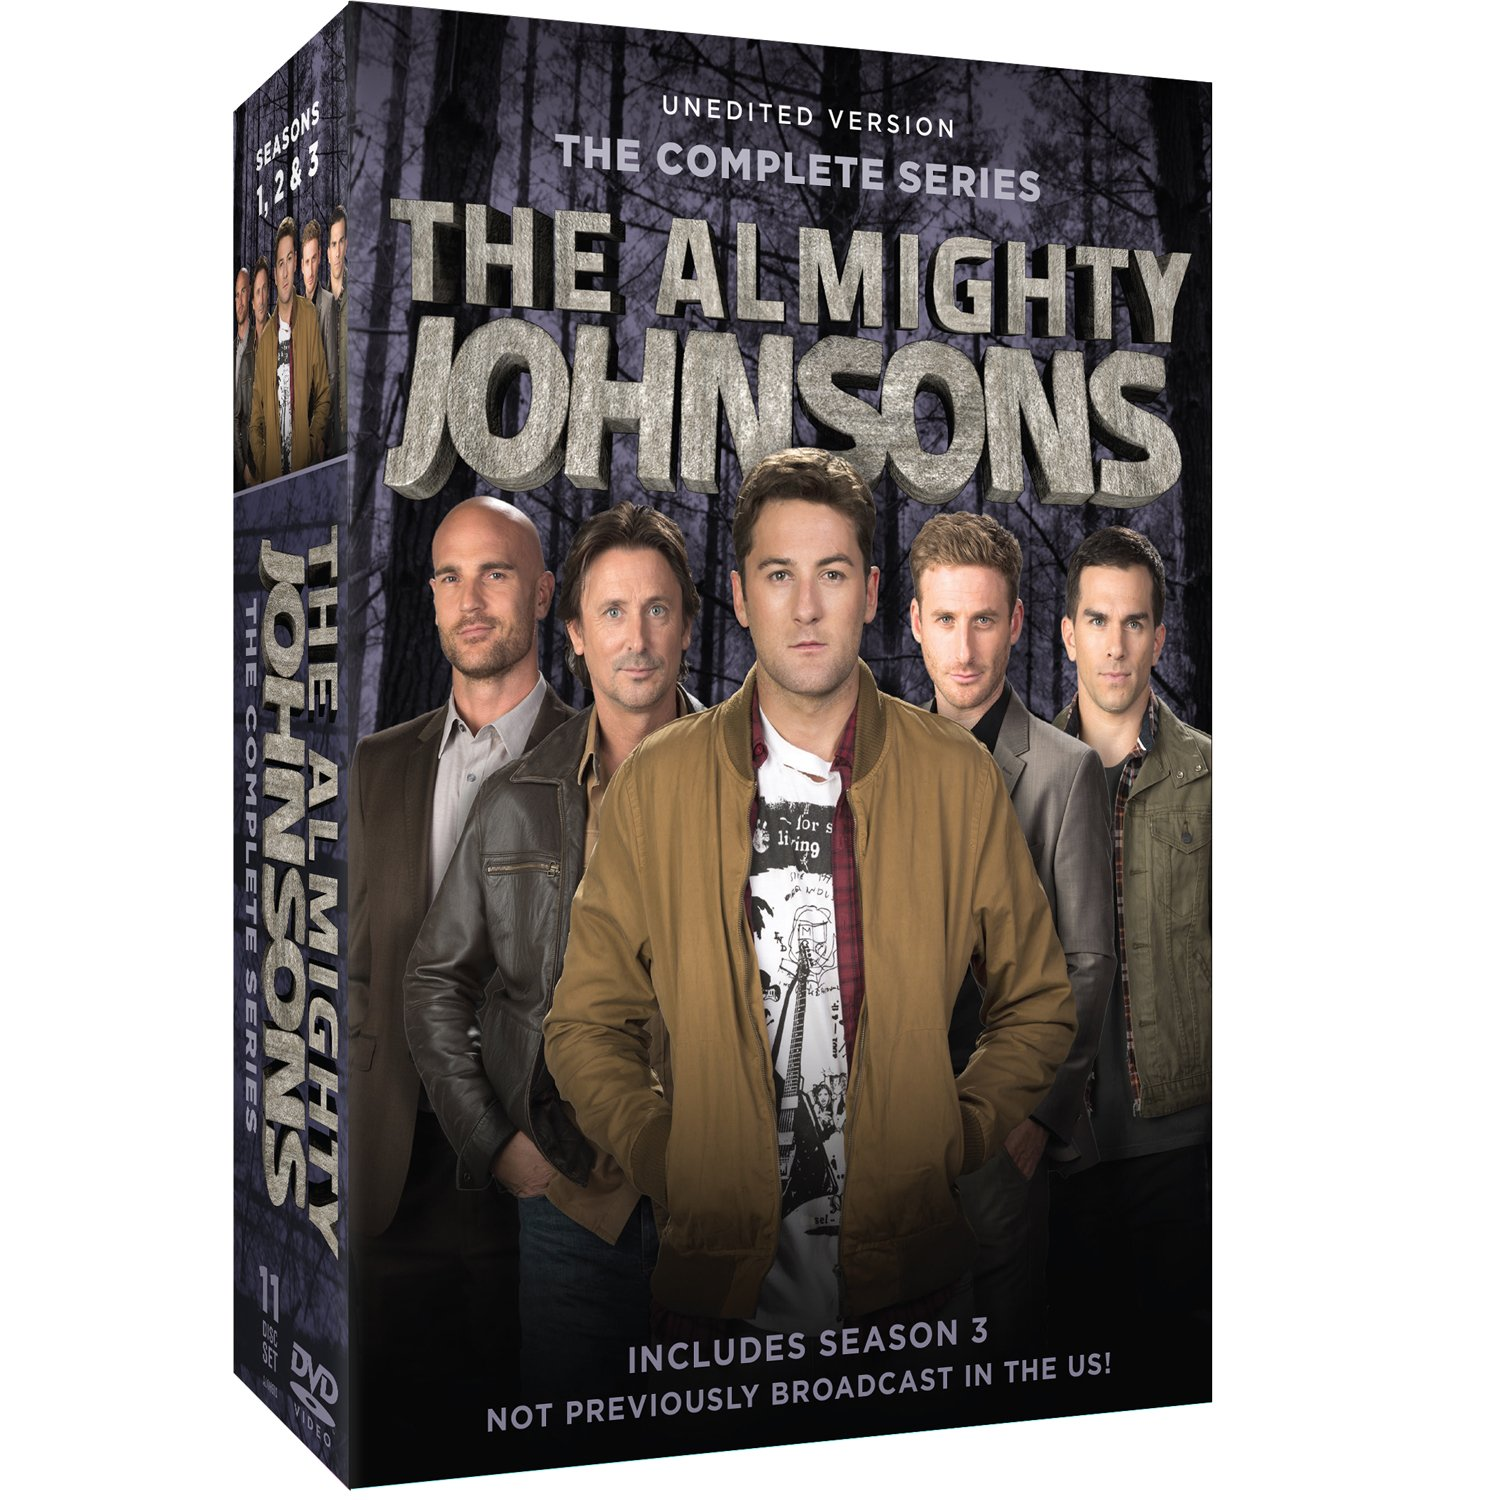 The Almighty Johnsons: Seasons 1-3